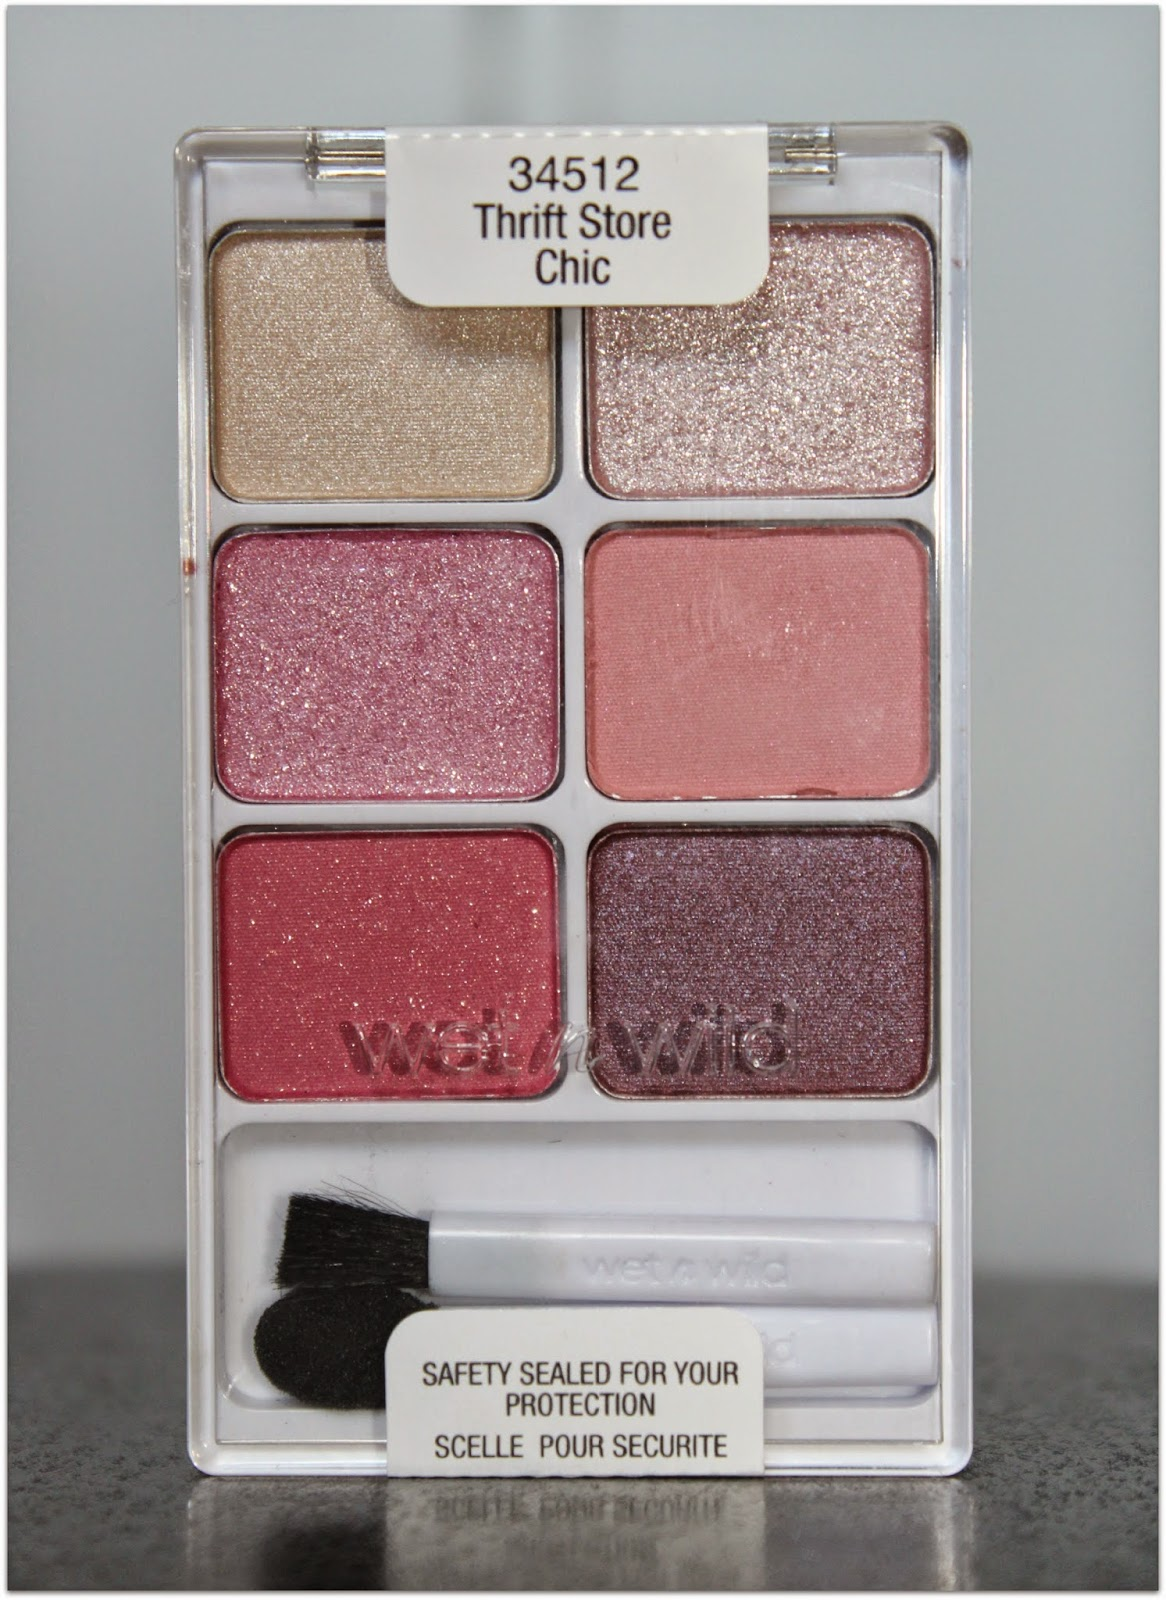 Wet n Wild Limited Edition Thrift Store Chic Eyeshadow Palette